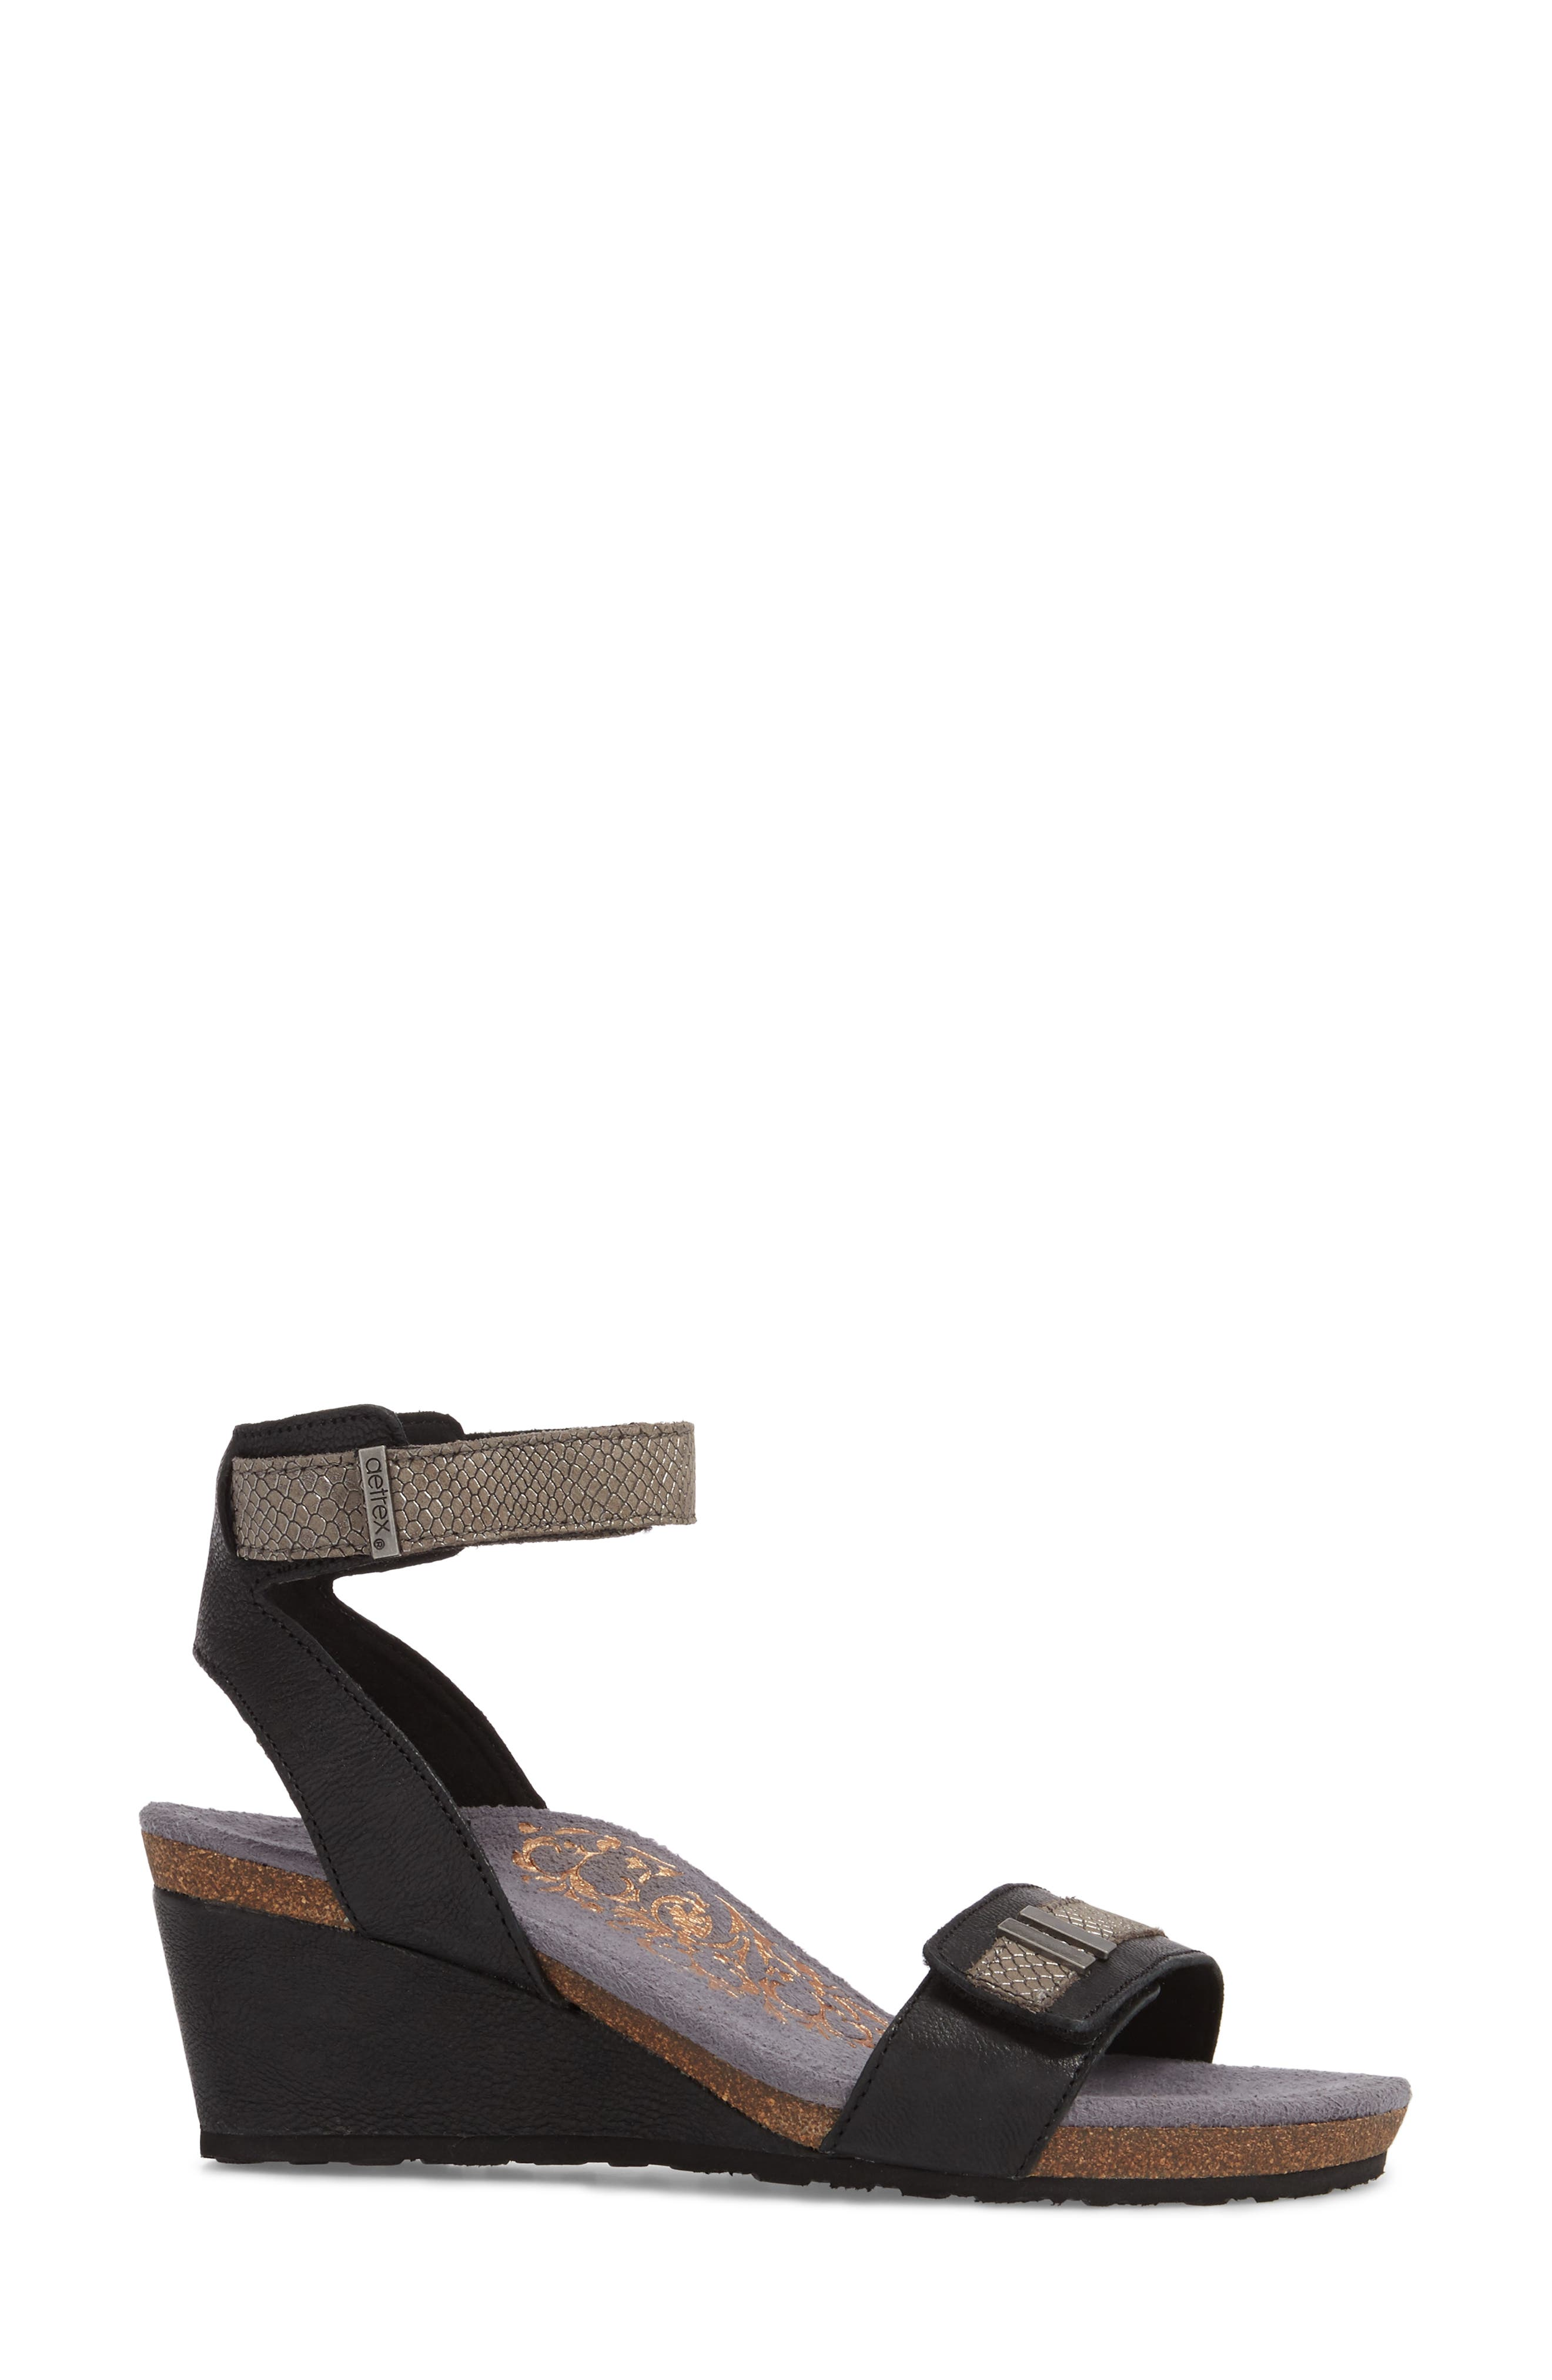 Gia Wedge Sandal,                             Alternate thumbnail 3, color,                             Black Leather